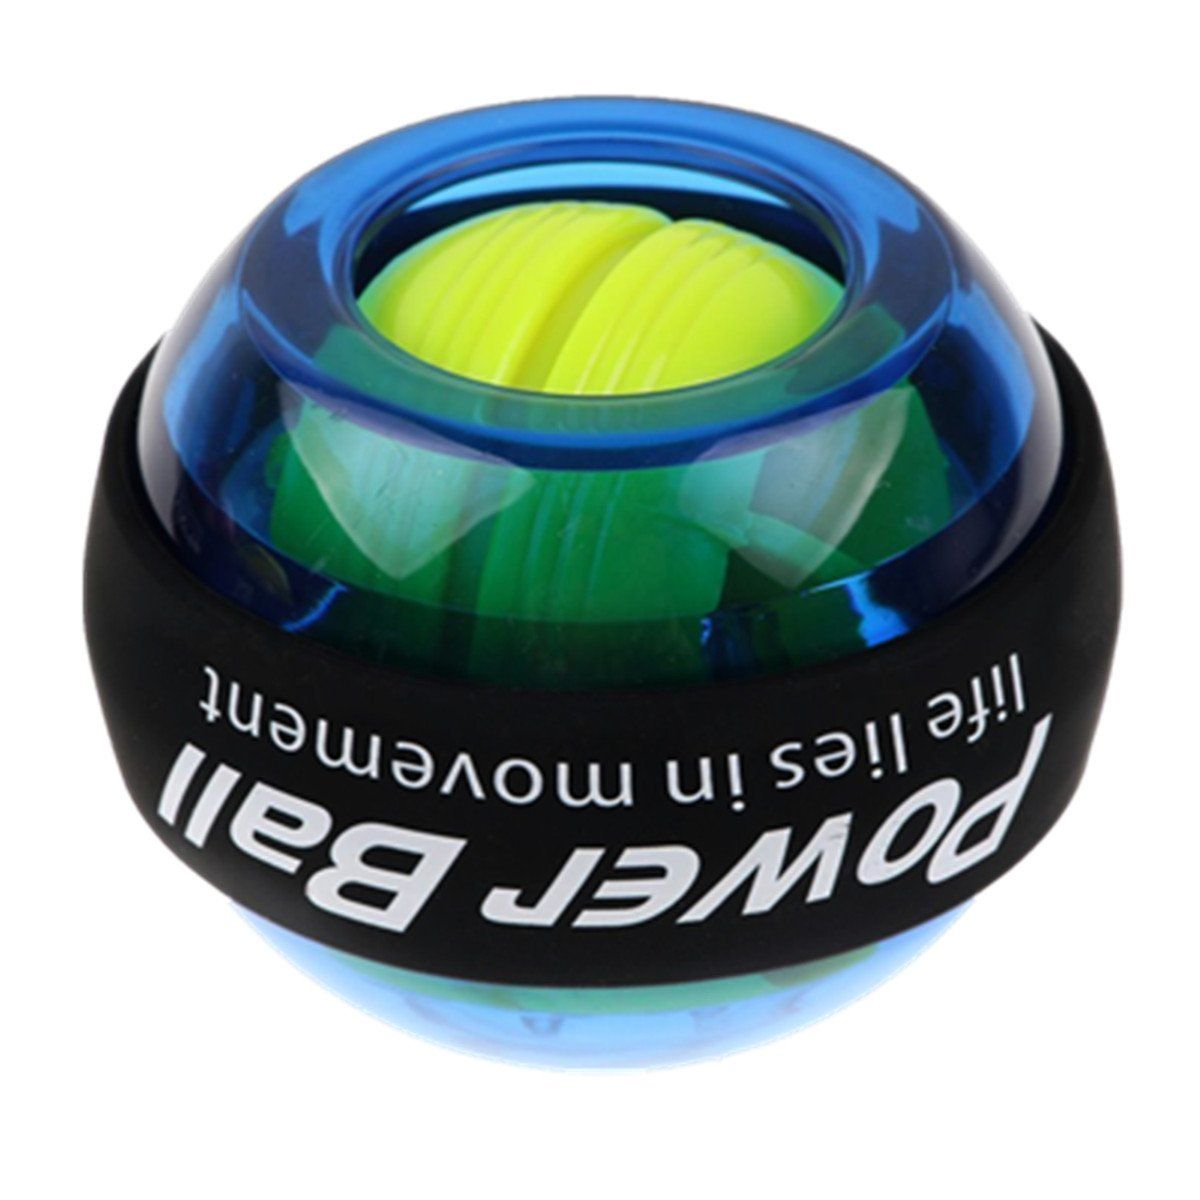 Led Wrist Ball Flykul Wrist Trainer Powerball Workout Toy Gyroscopic Power Ball Spinner Gyroscopic Wrist And Forearm Exerciser A Power Balls Ball Powerball